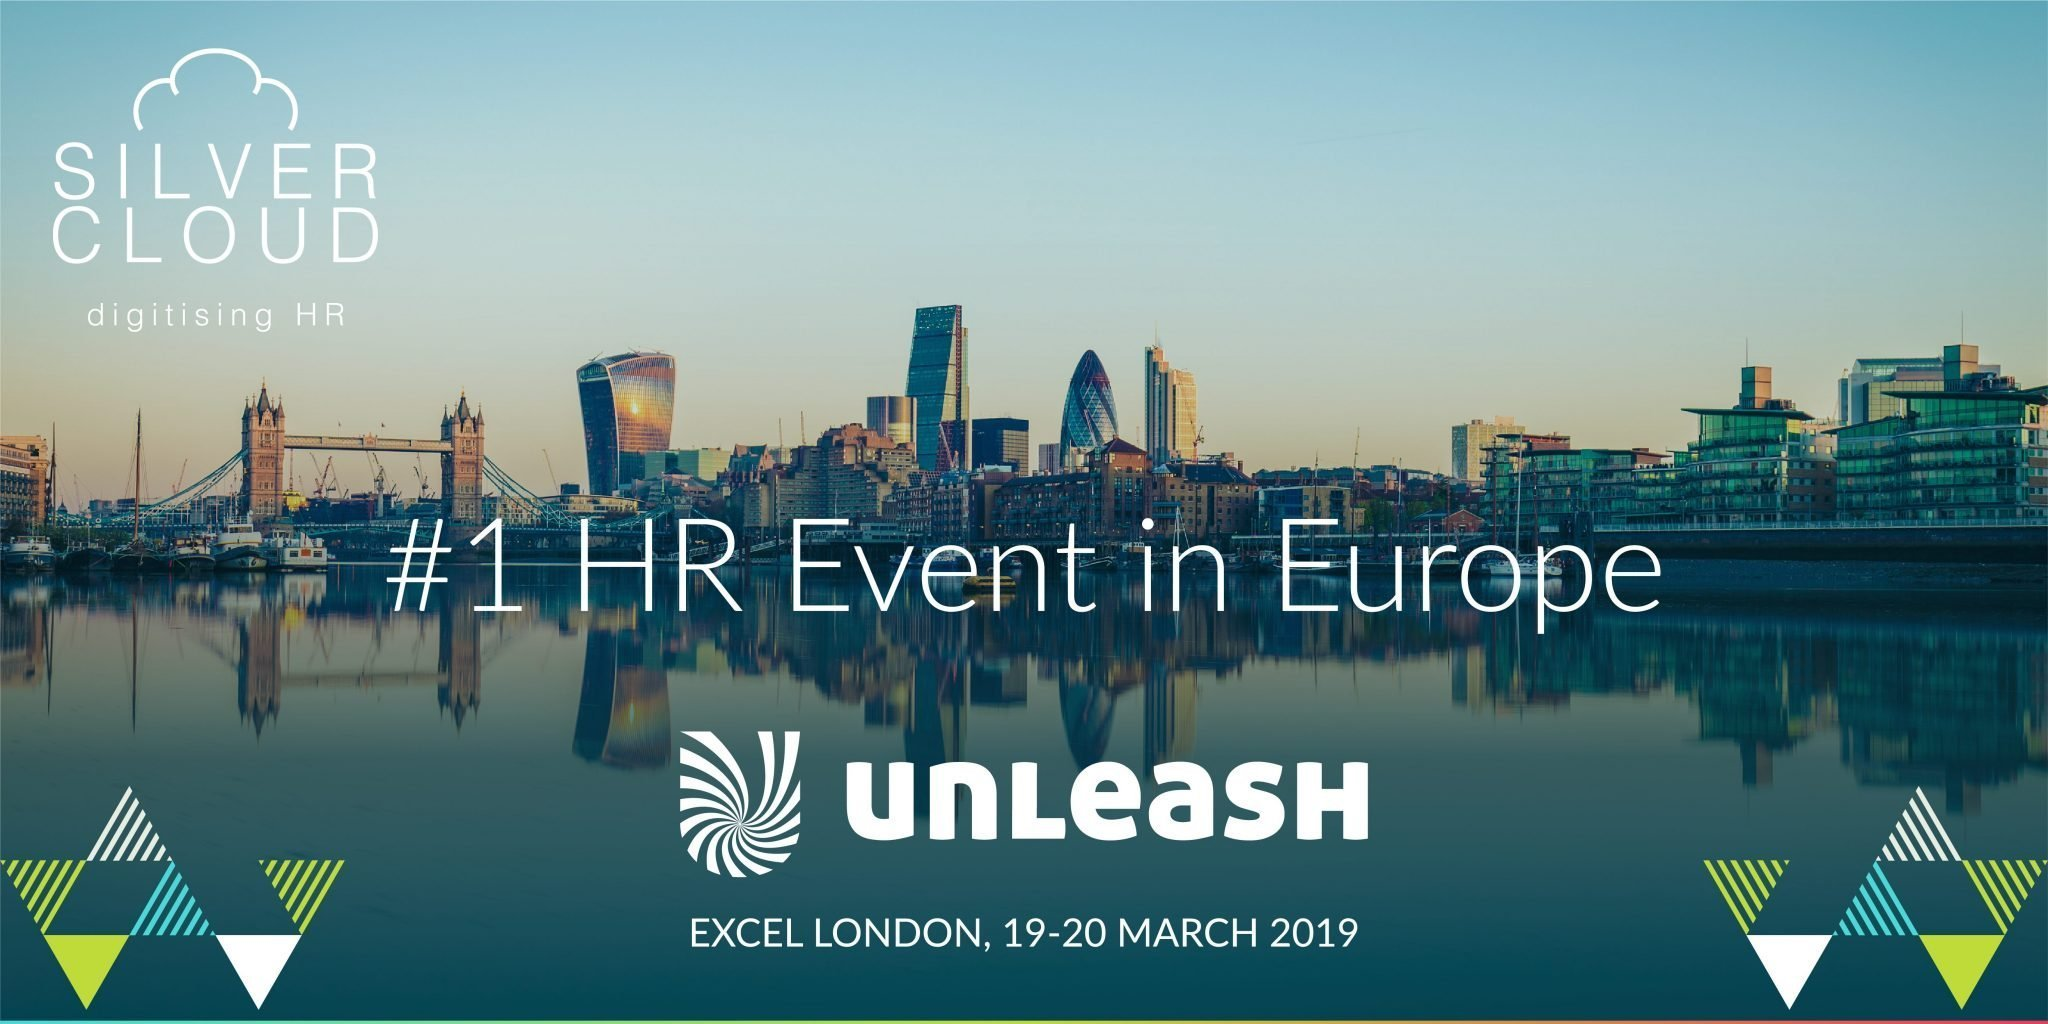 Attend Unleash as a guest of Silver Cloud HR